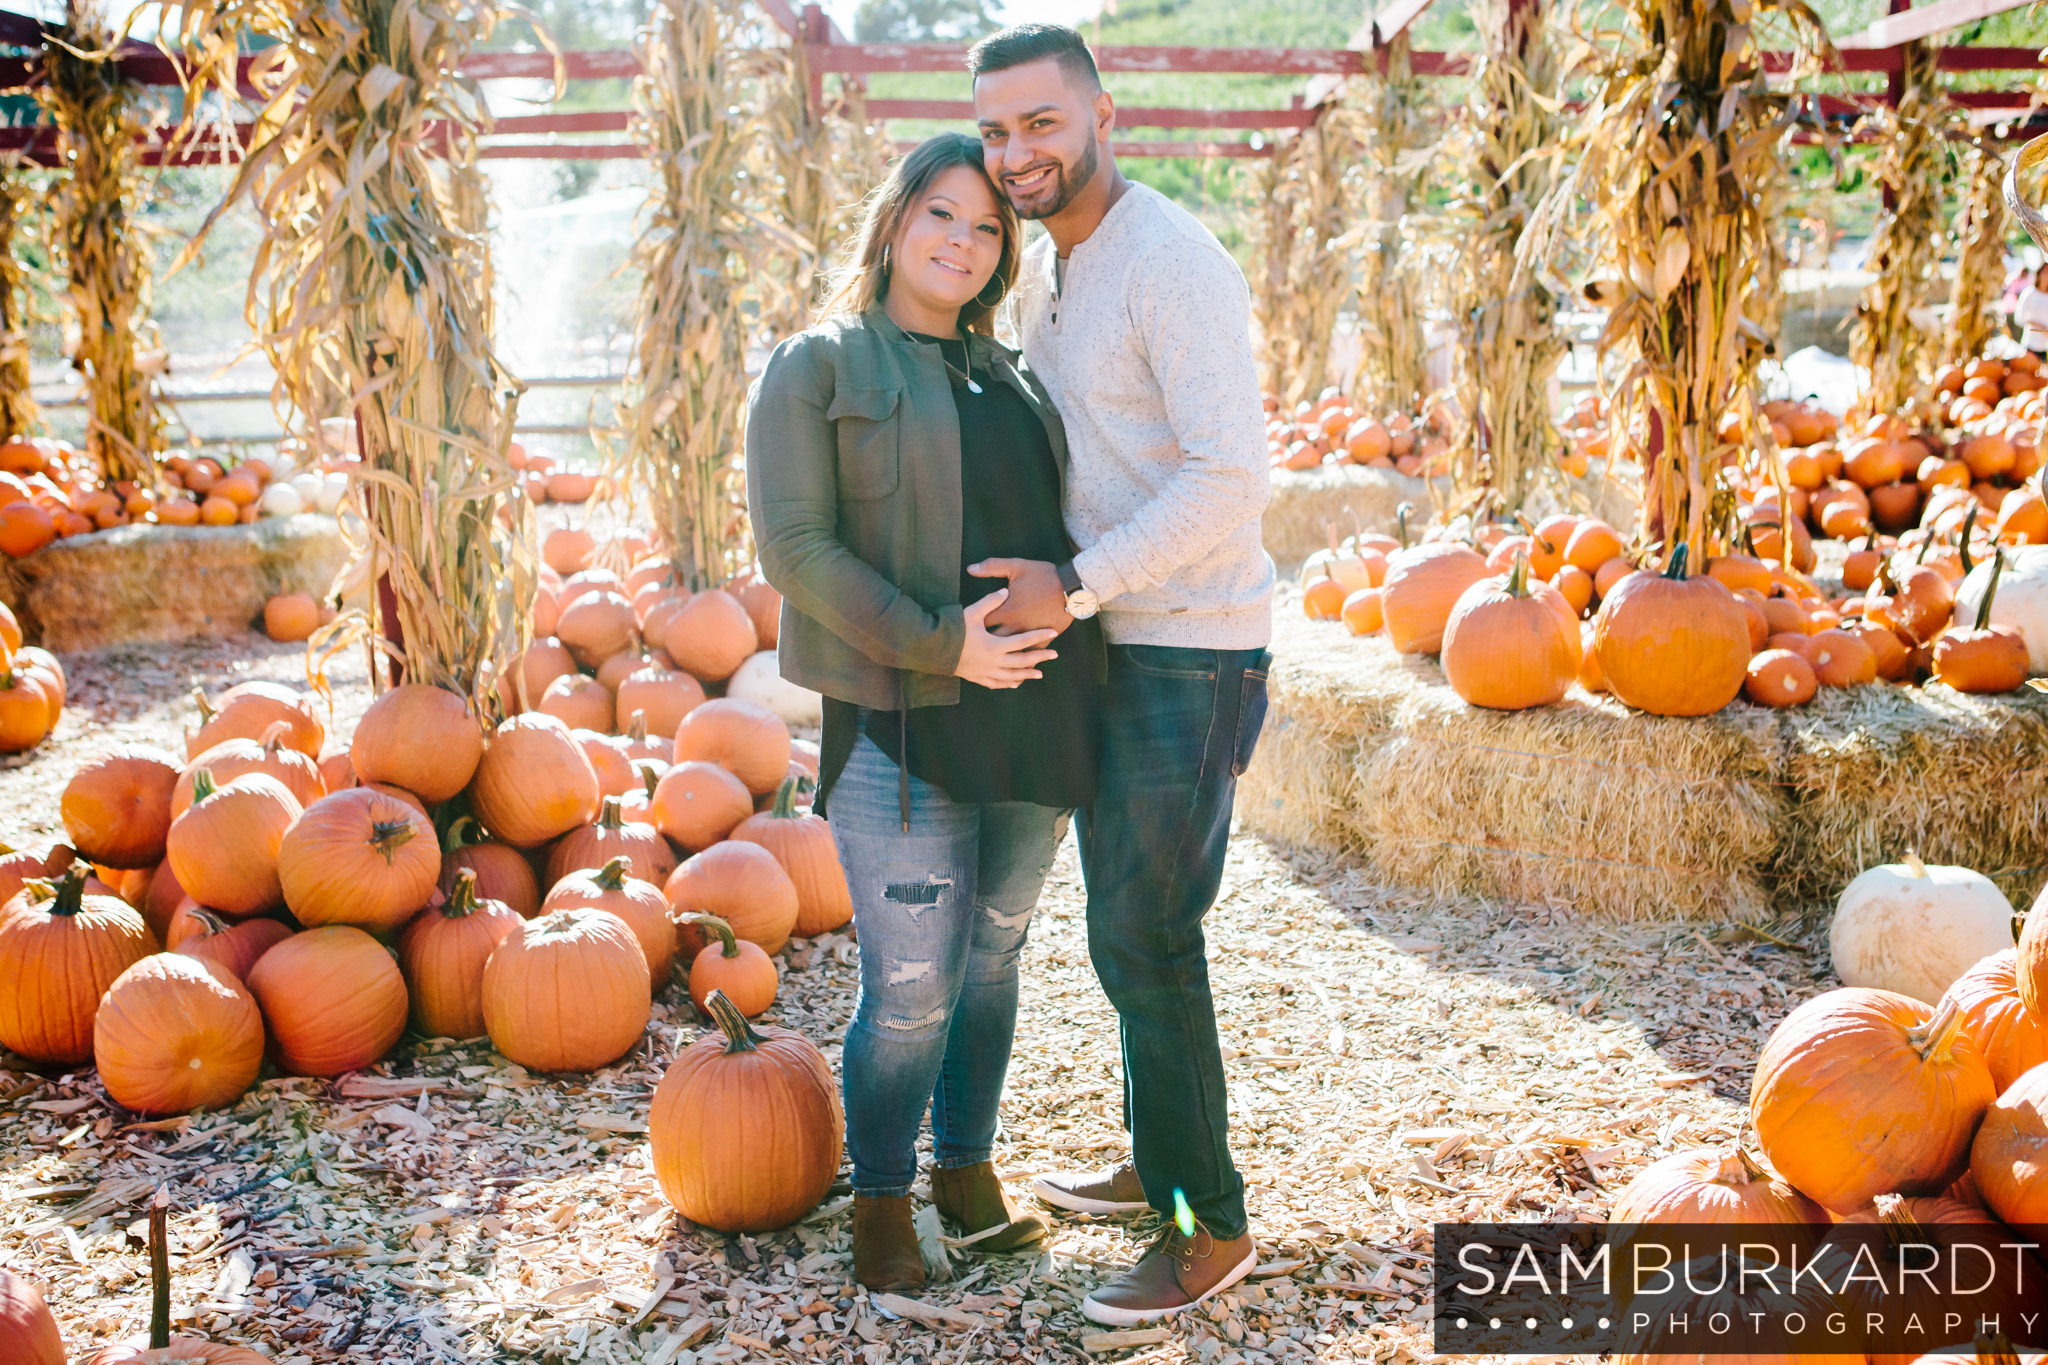 sburkardt_maternity_connecticut_fall_orchard_photography_002.jpg